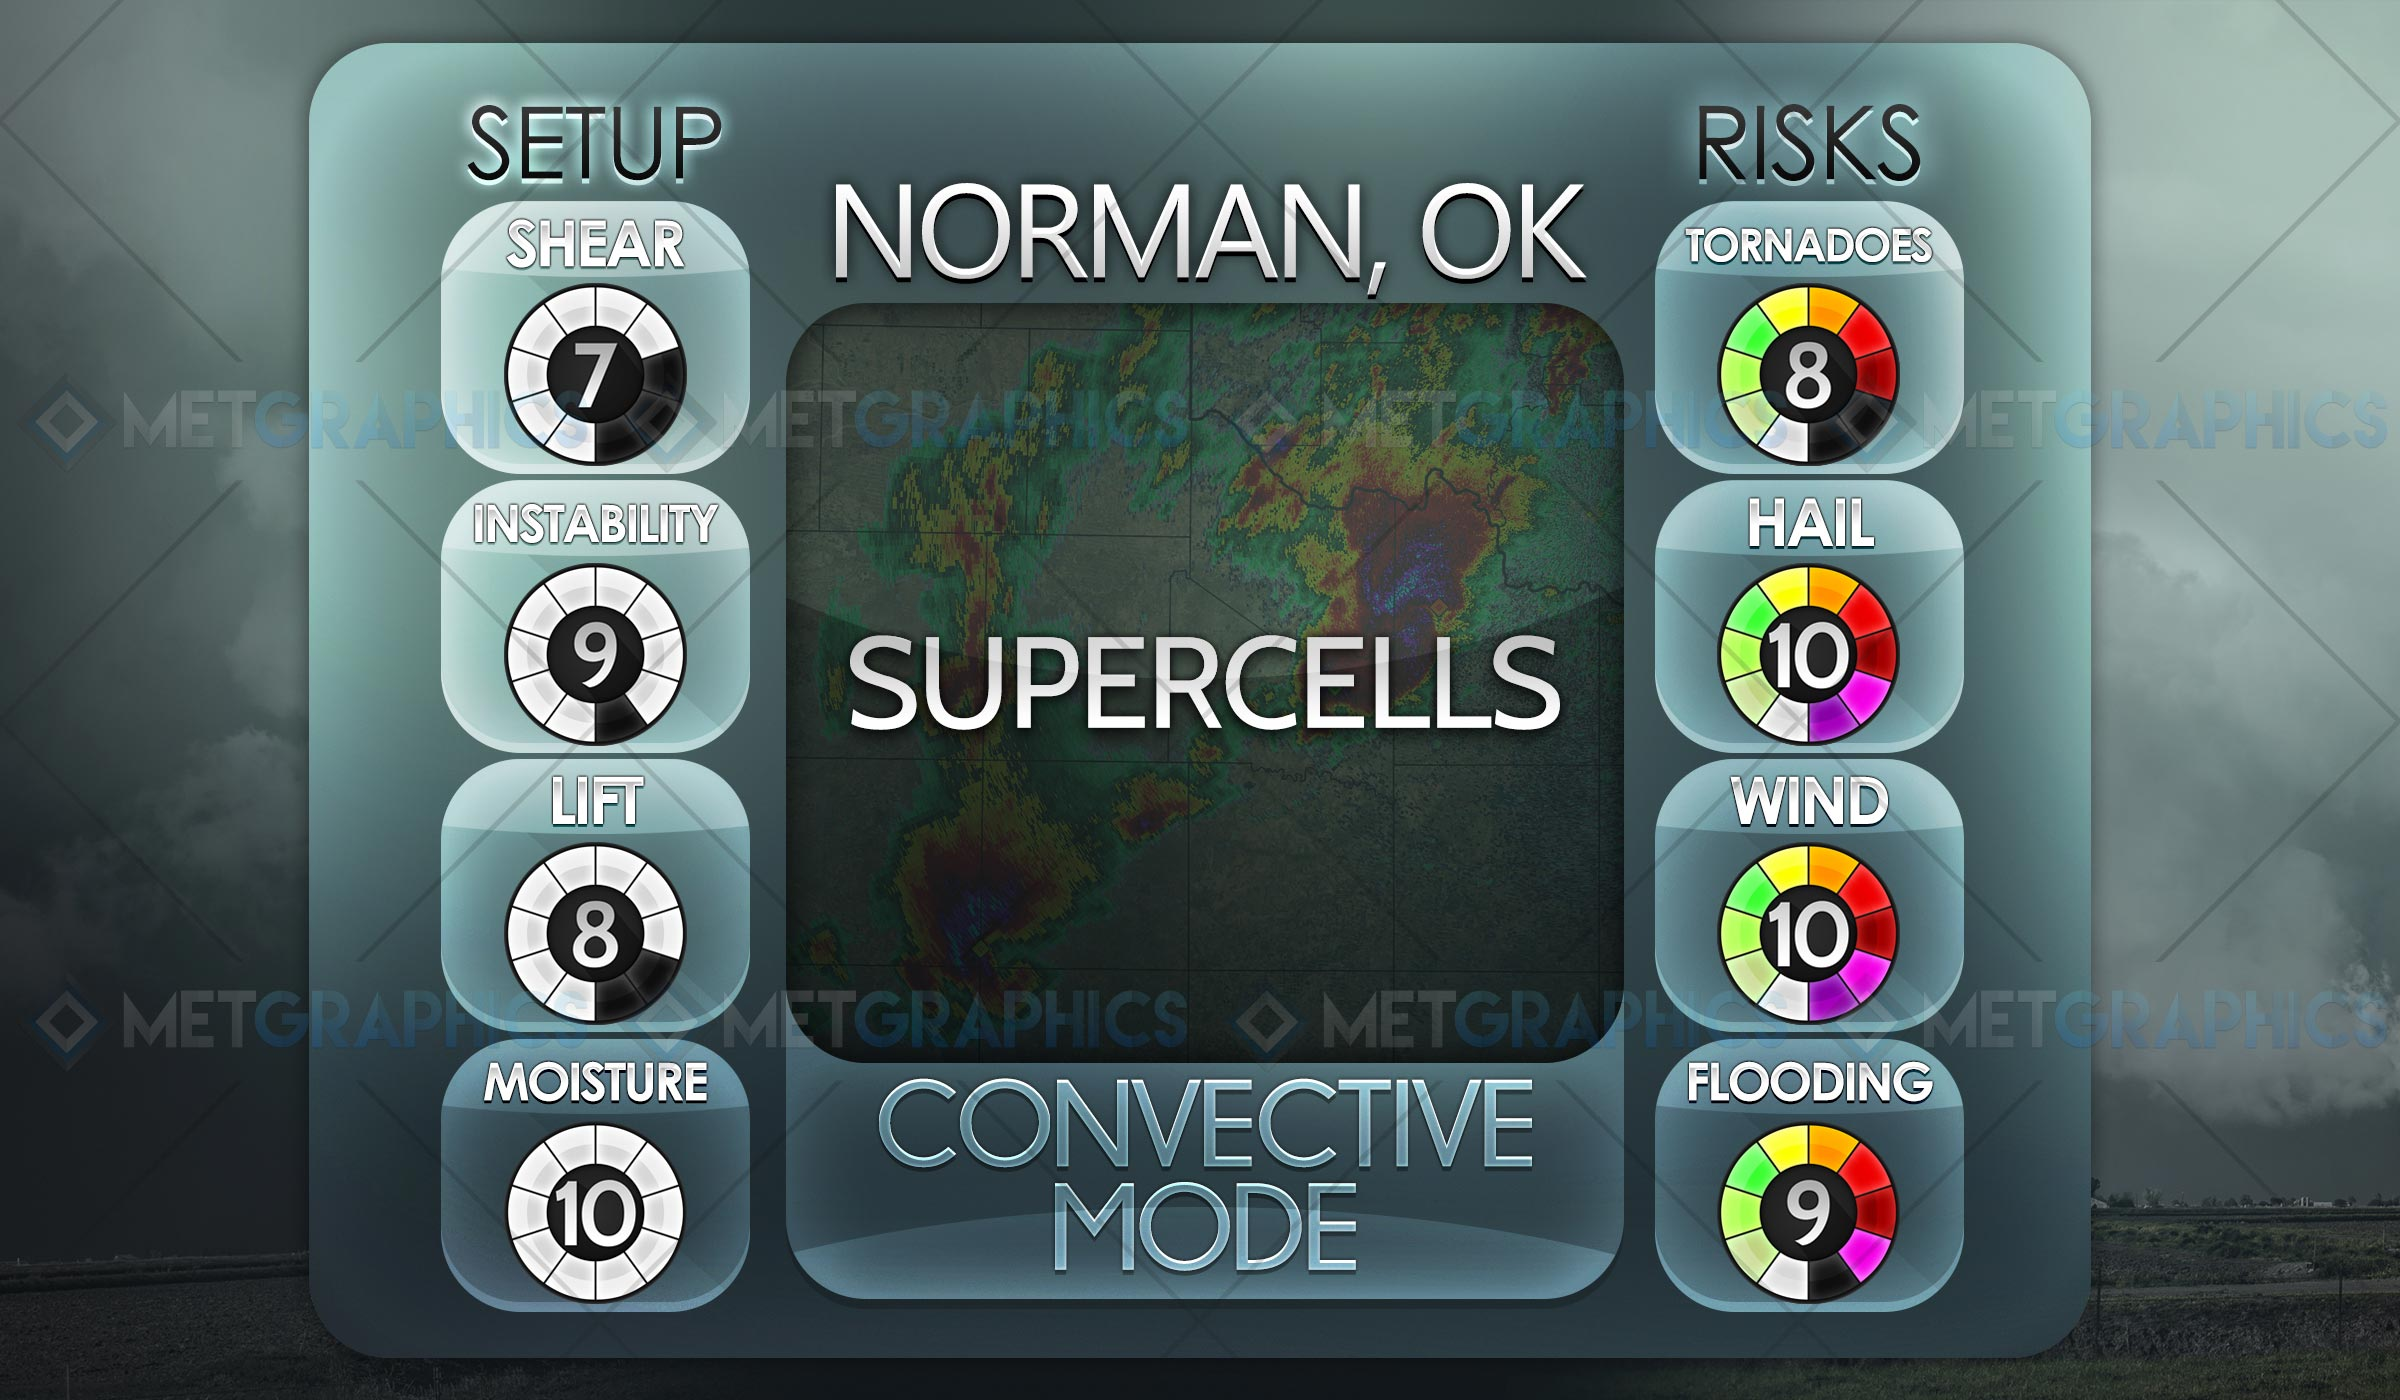 Convective Mode III: Supercells